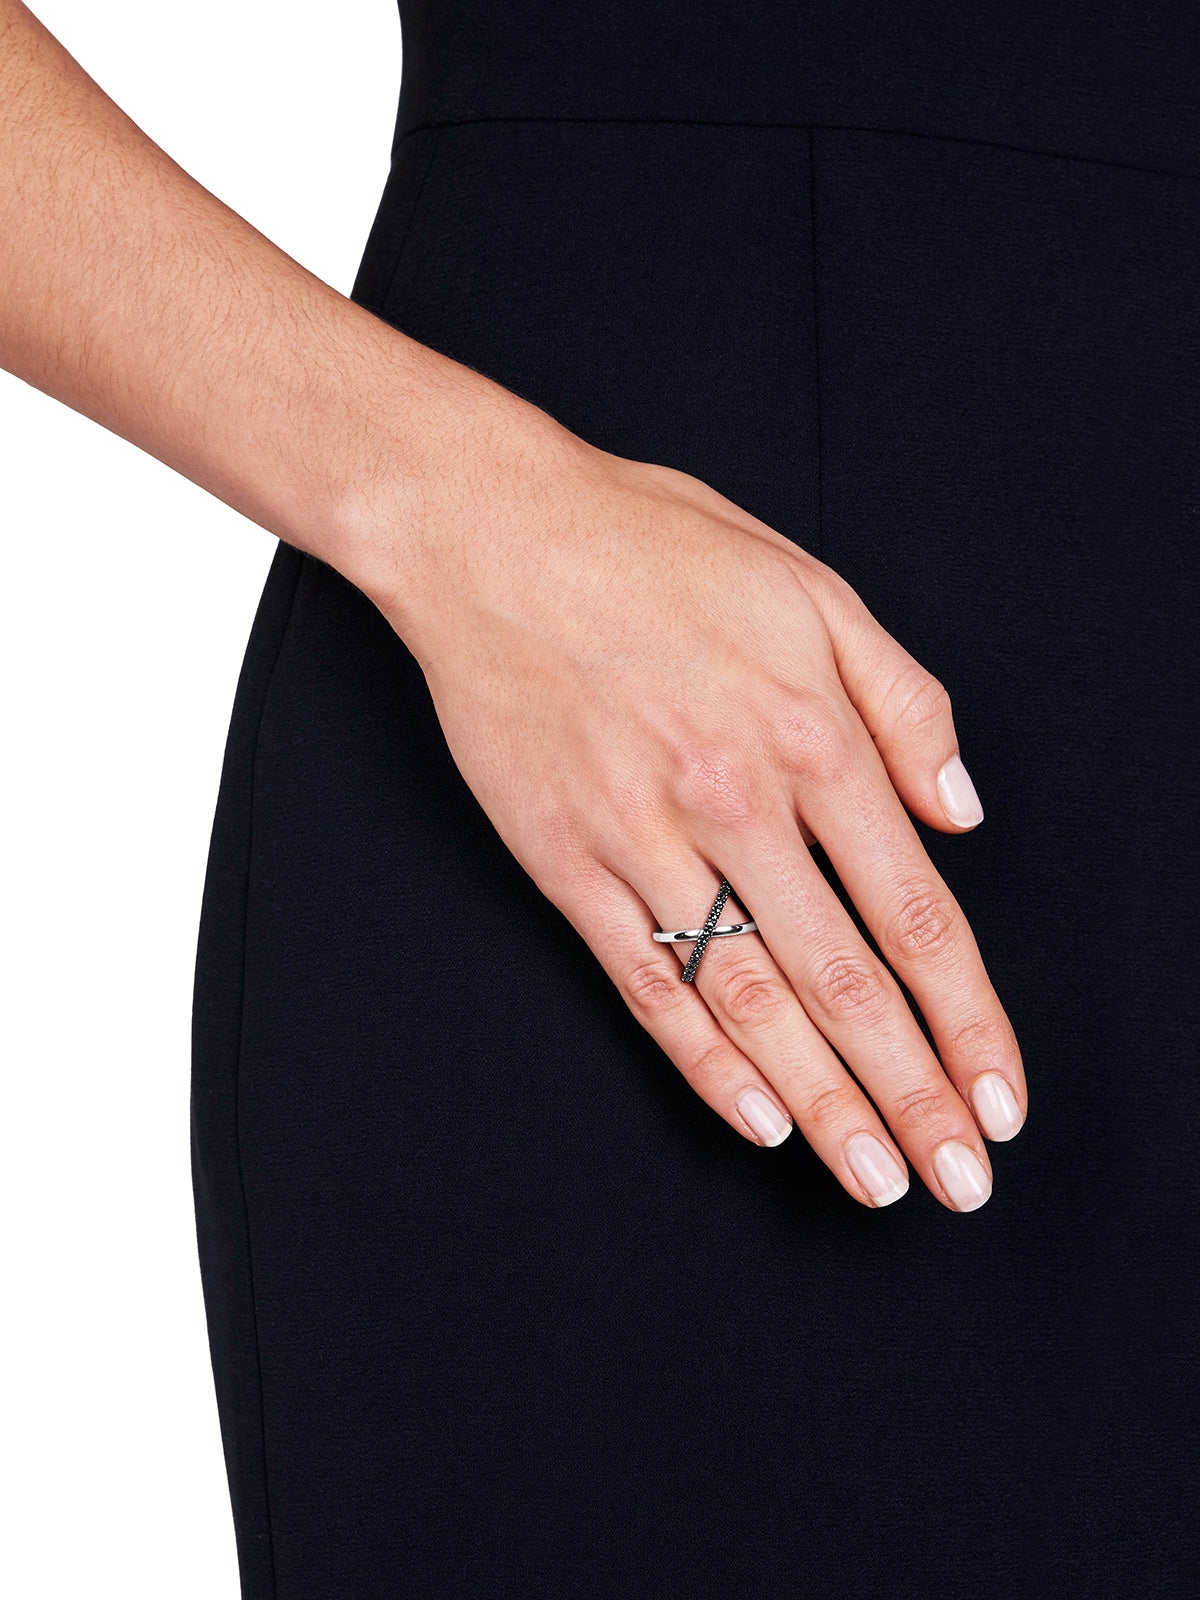 KATIA Single Crossover Black Diamond Ring